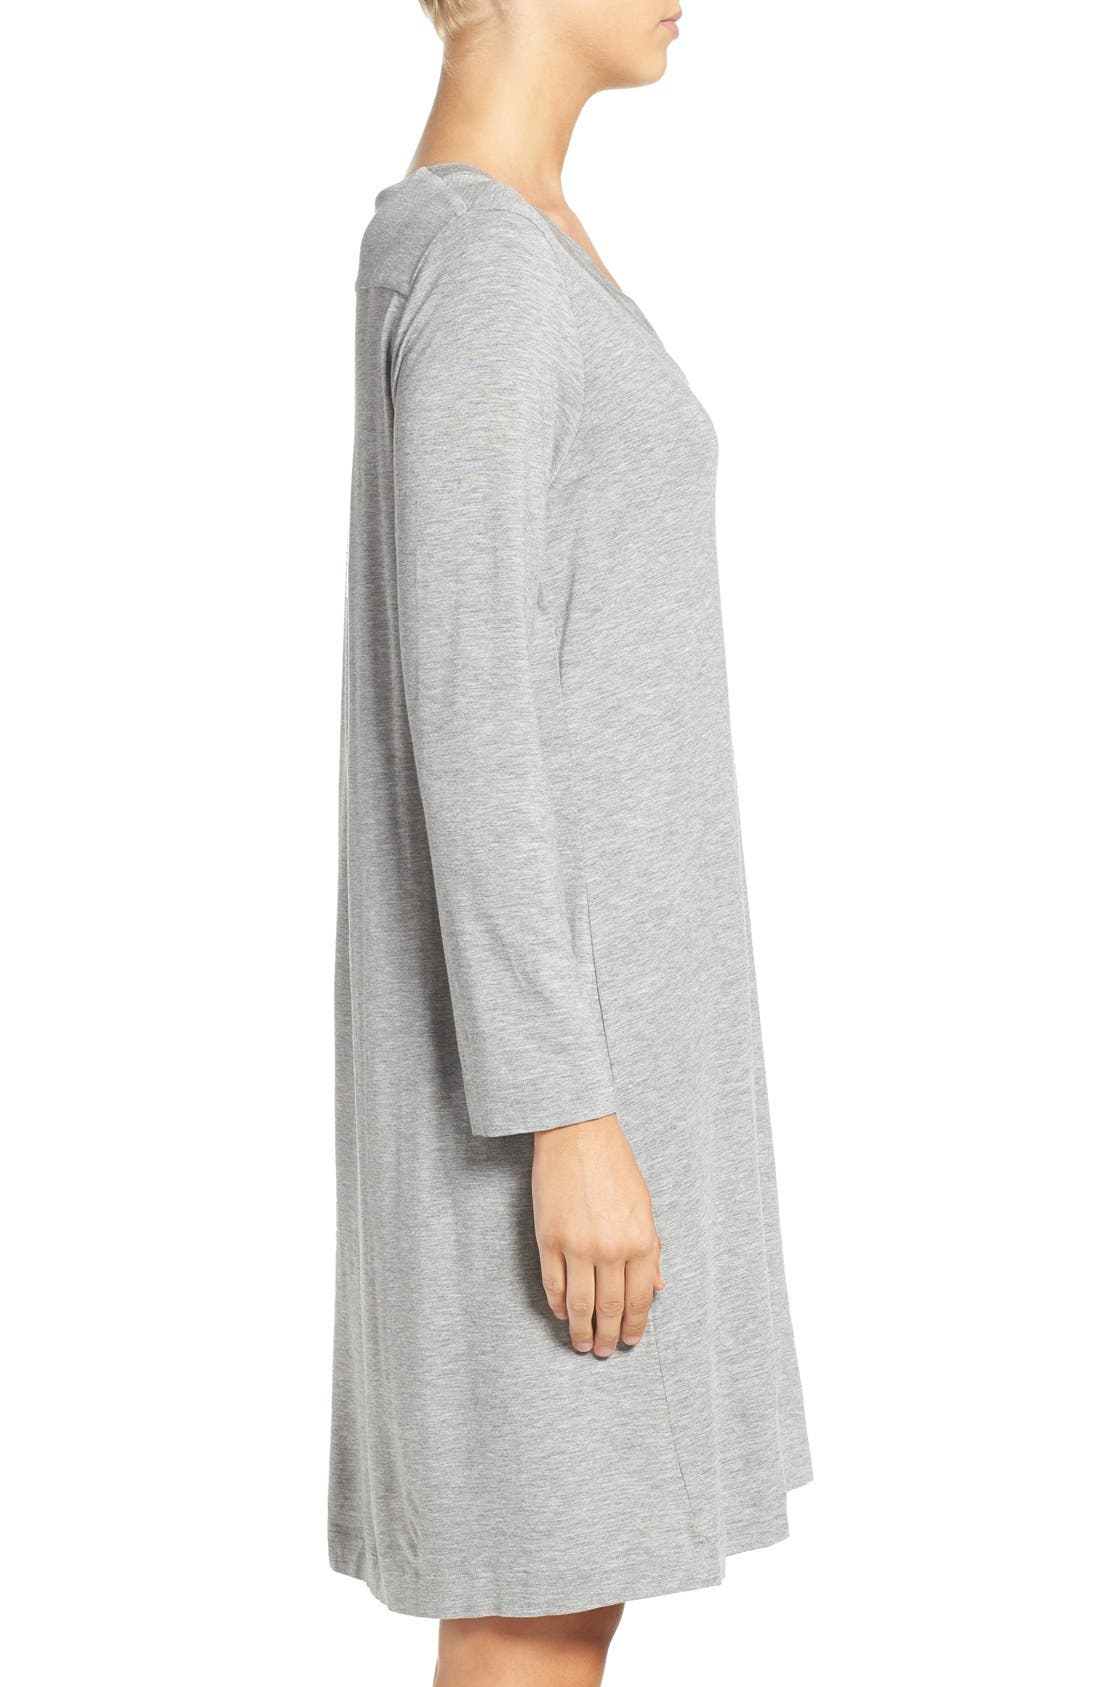 Long Sleeve Knit Nightgown,                             Alternate thumbnail 3, color,                             Grey Melange 958